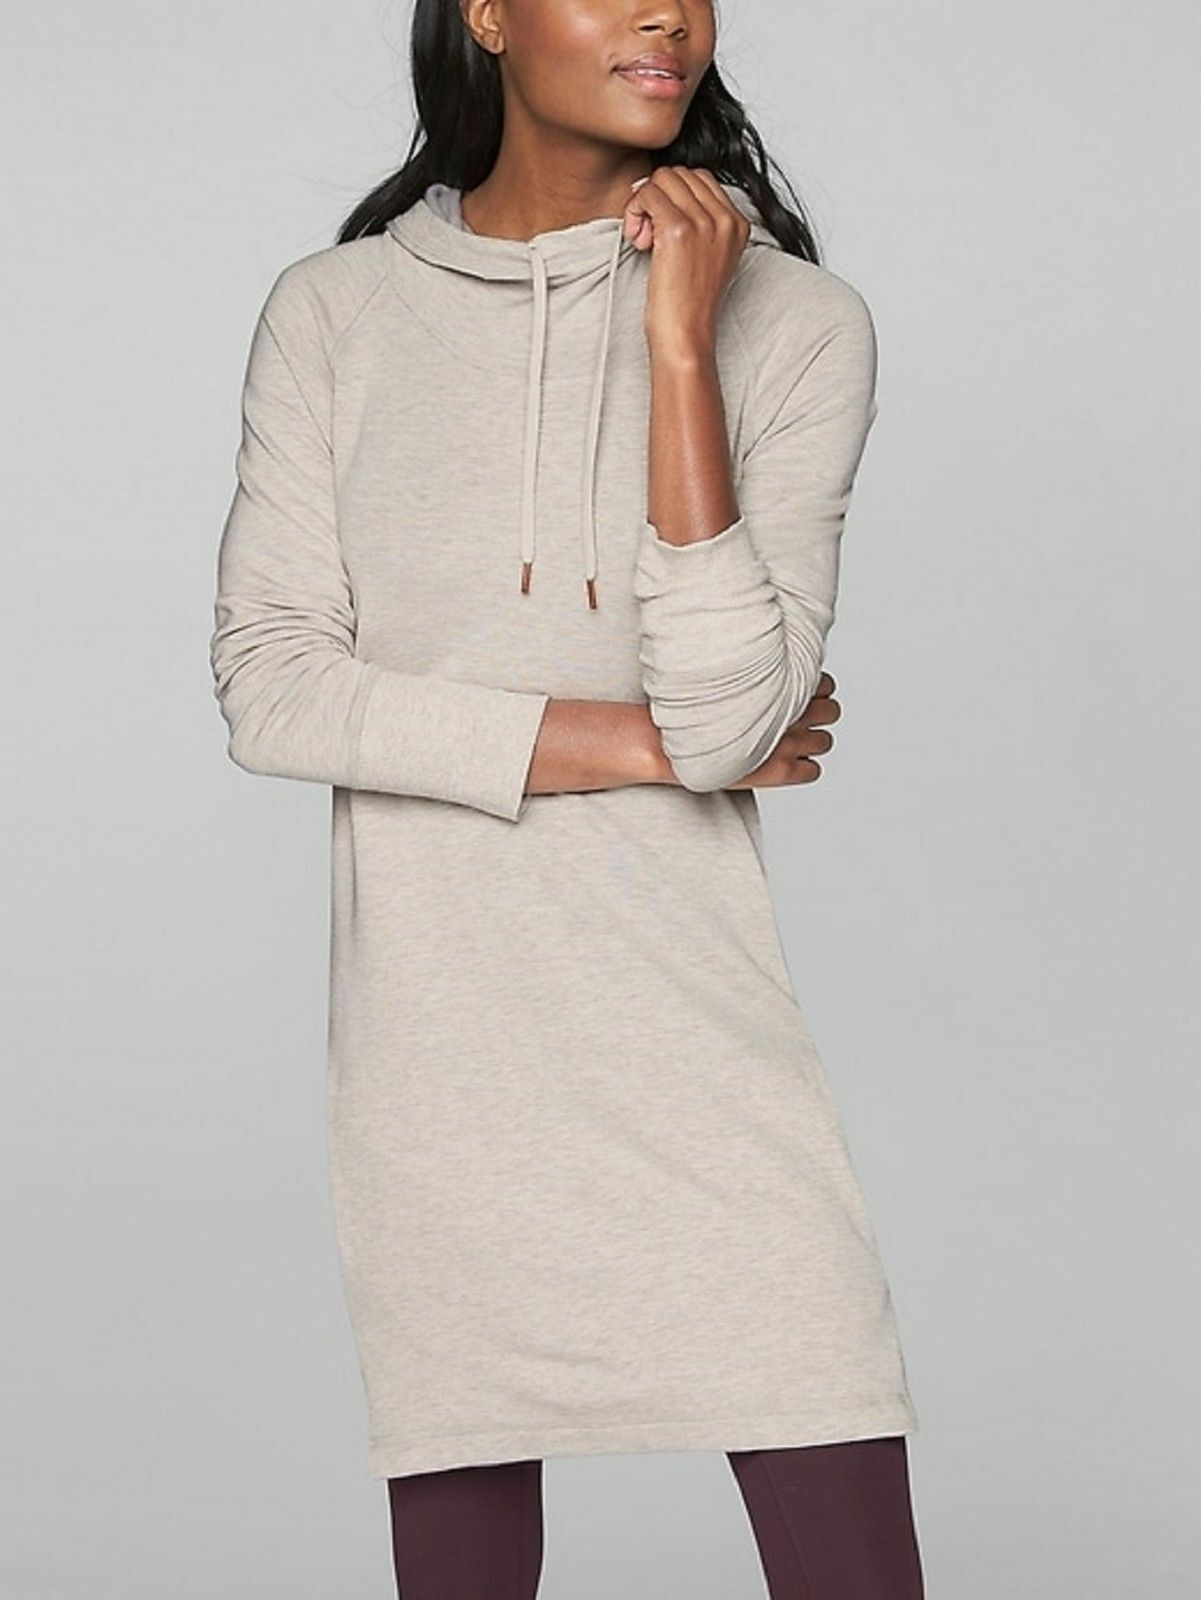 Athleta Pimlico Cowl Lounge Sweatshirt Dress,Toasted braun Heather SZ M